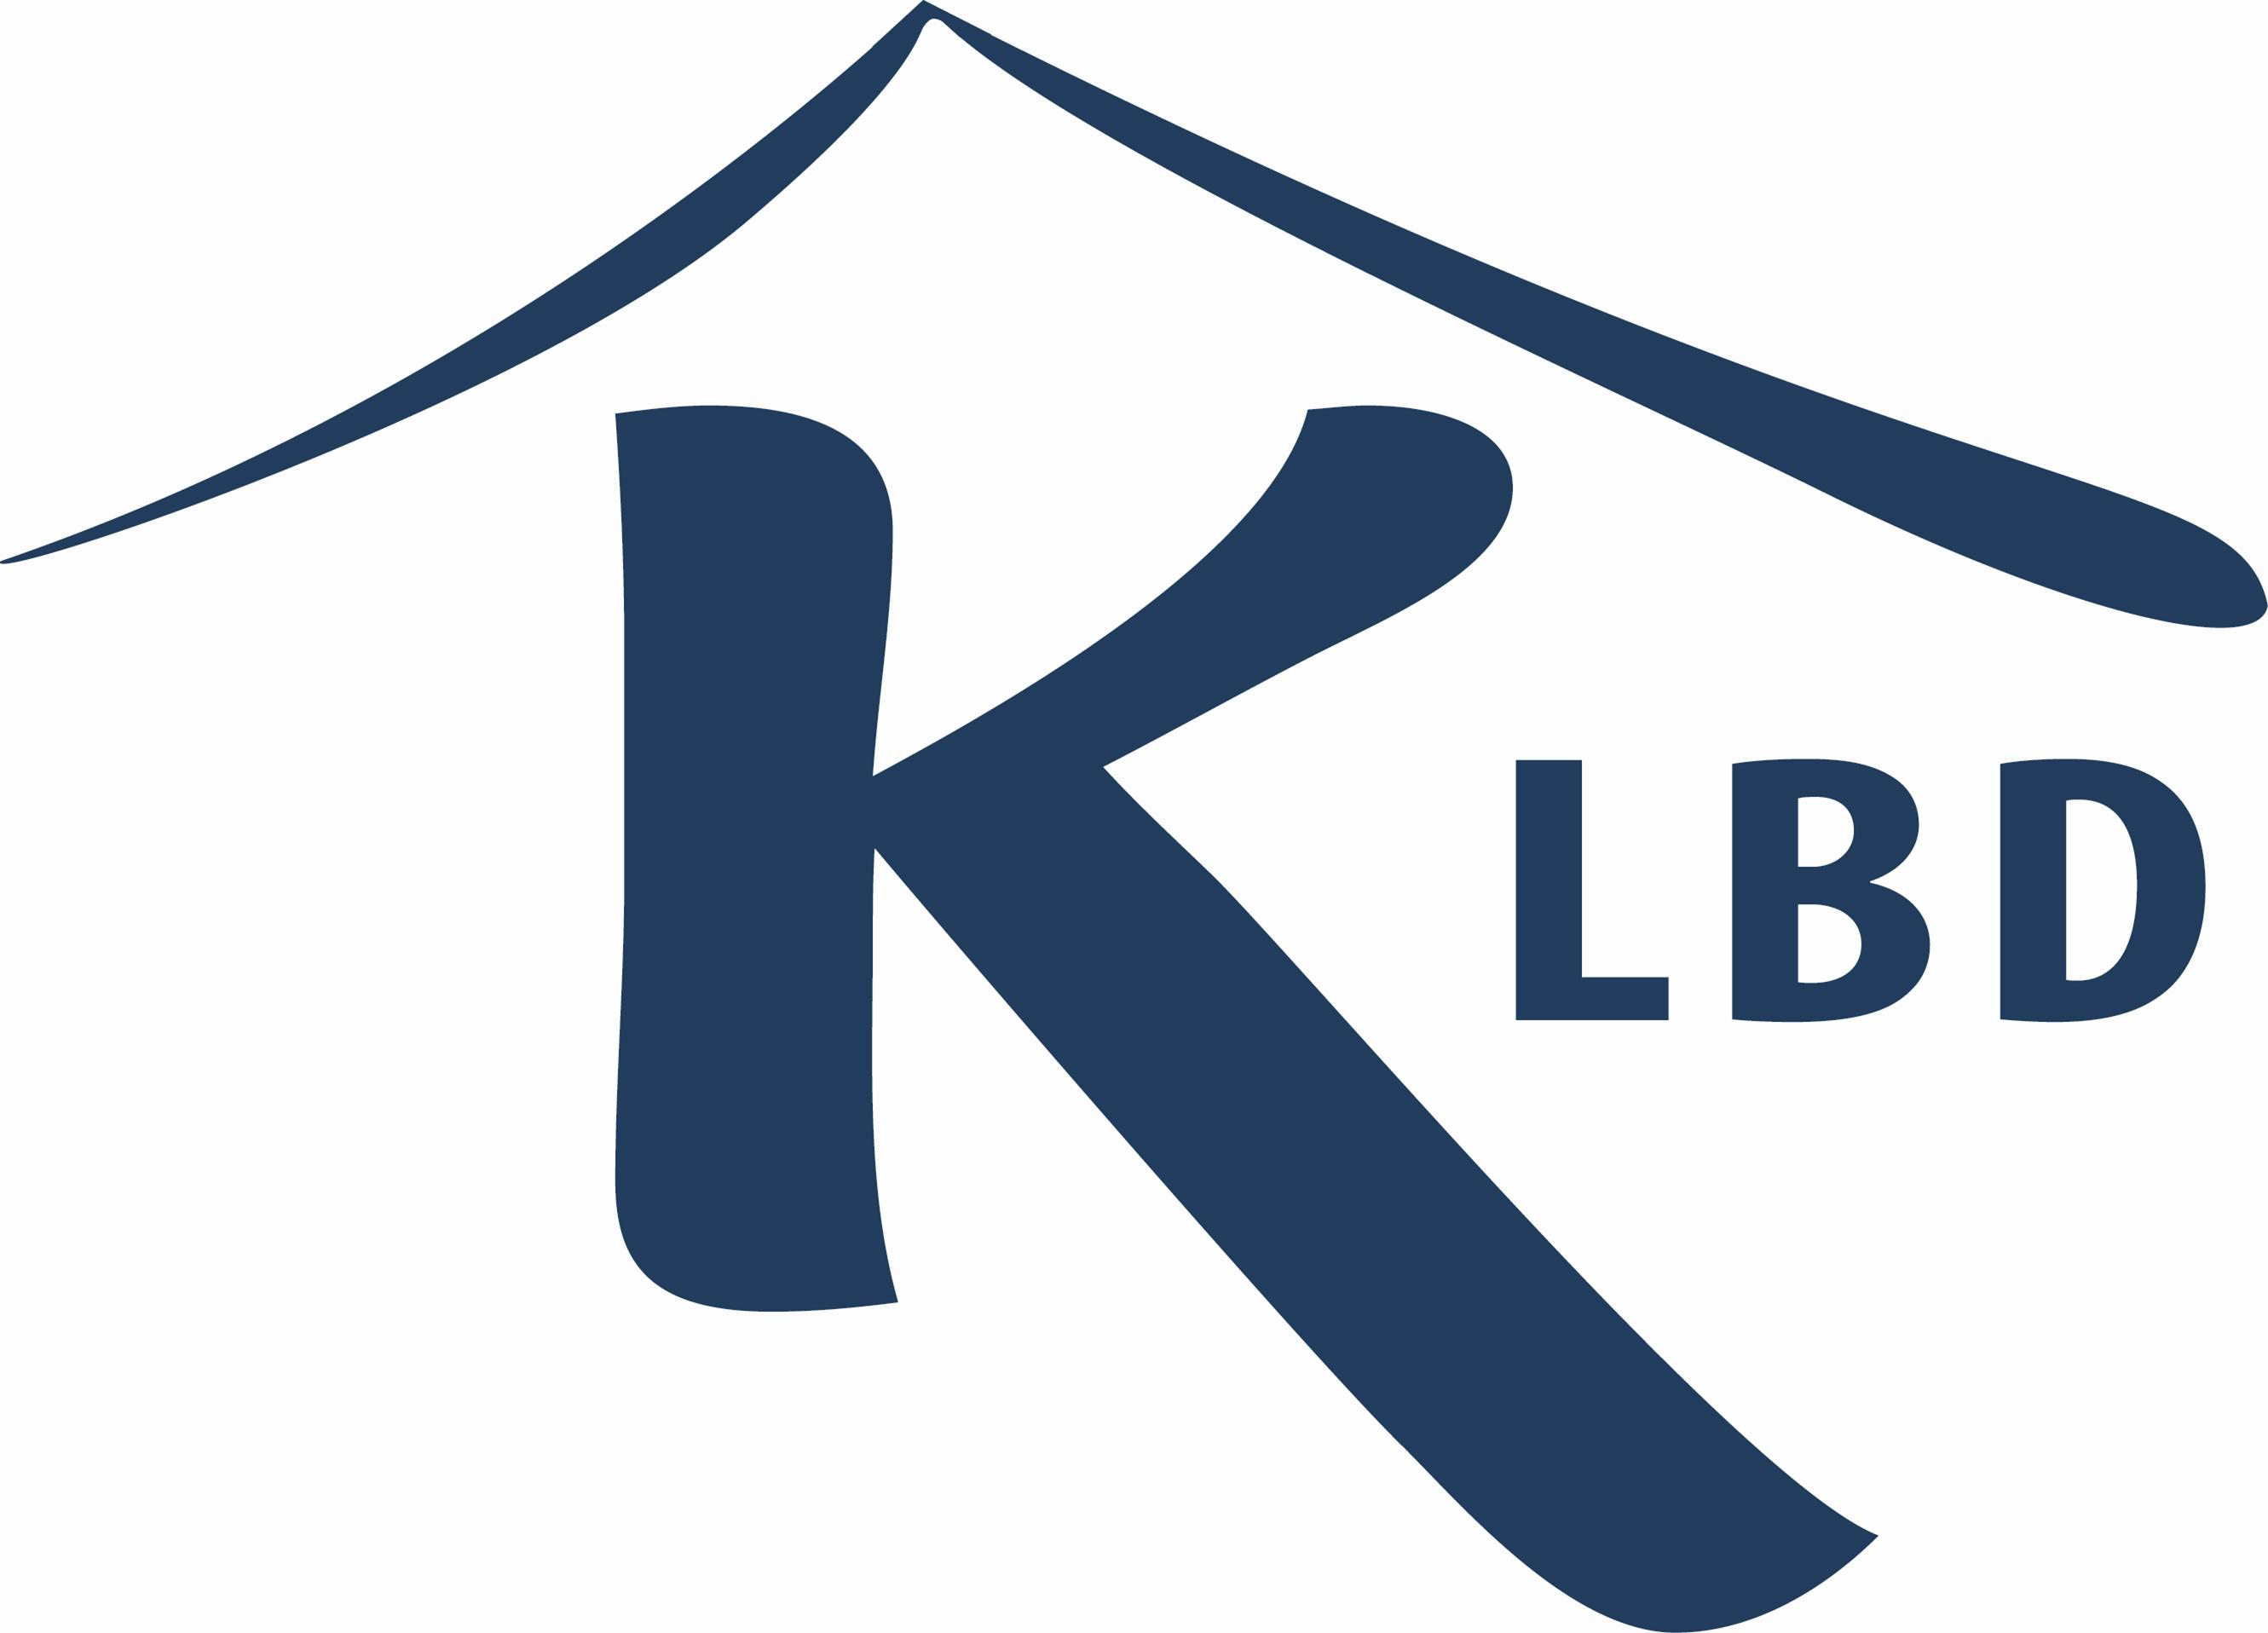 KLBD Kosher Certification